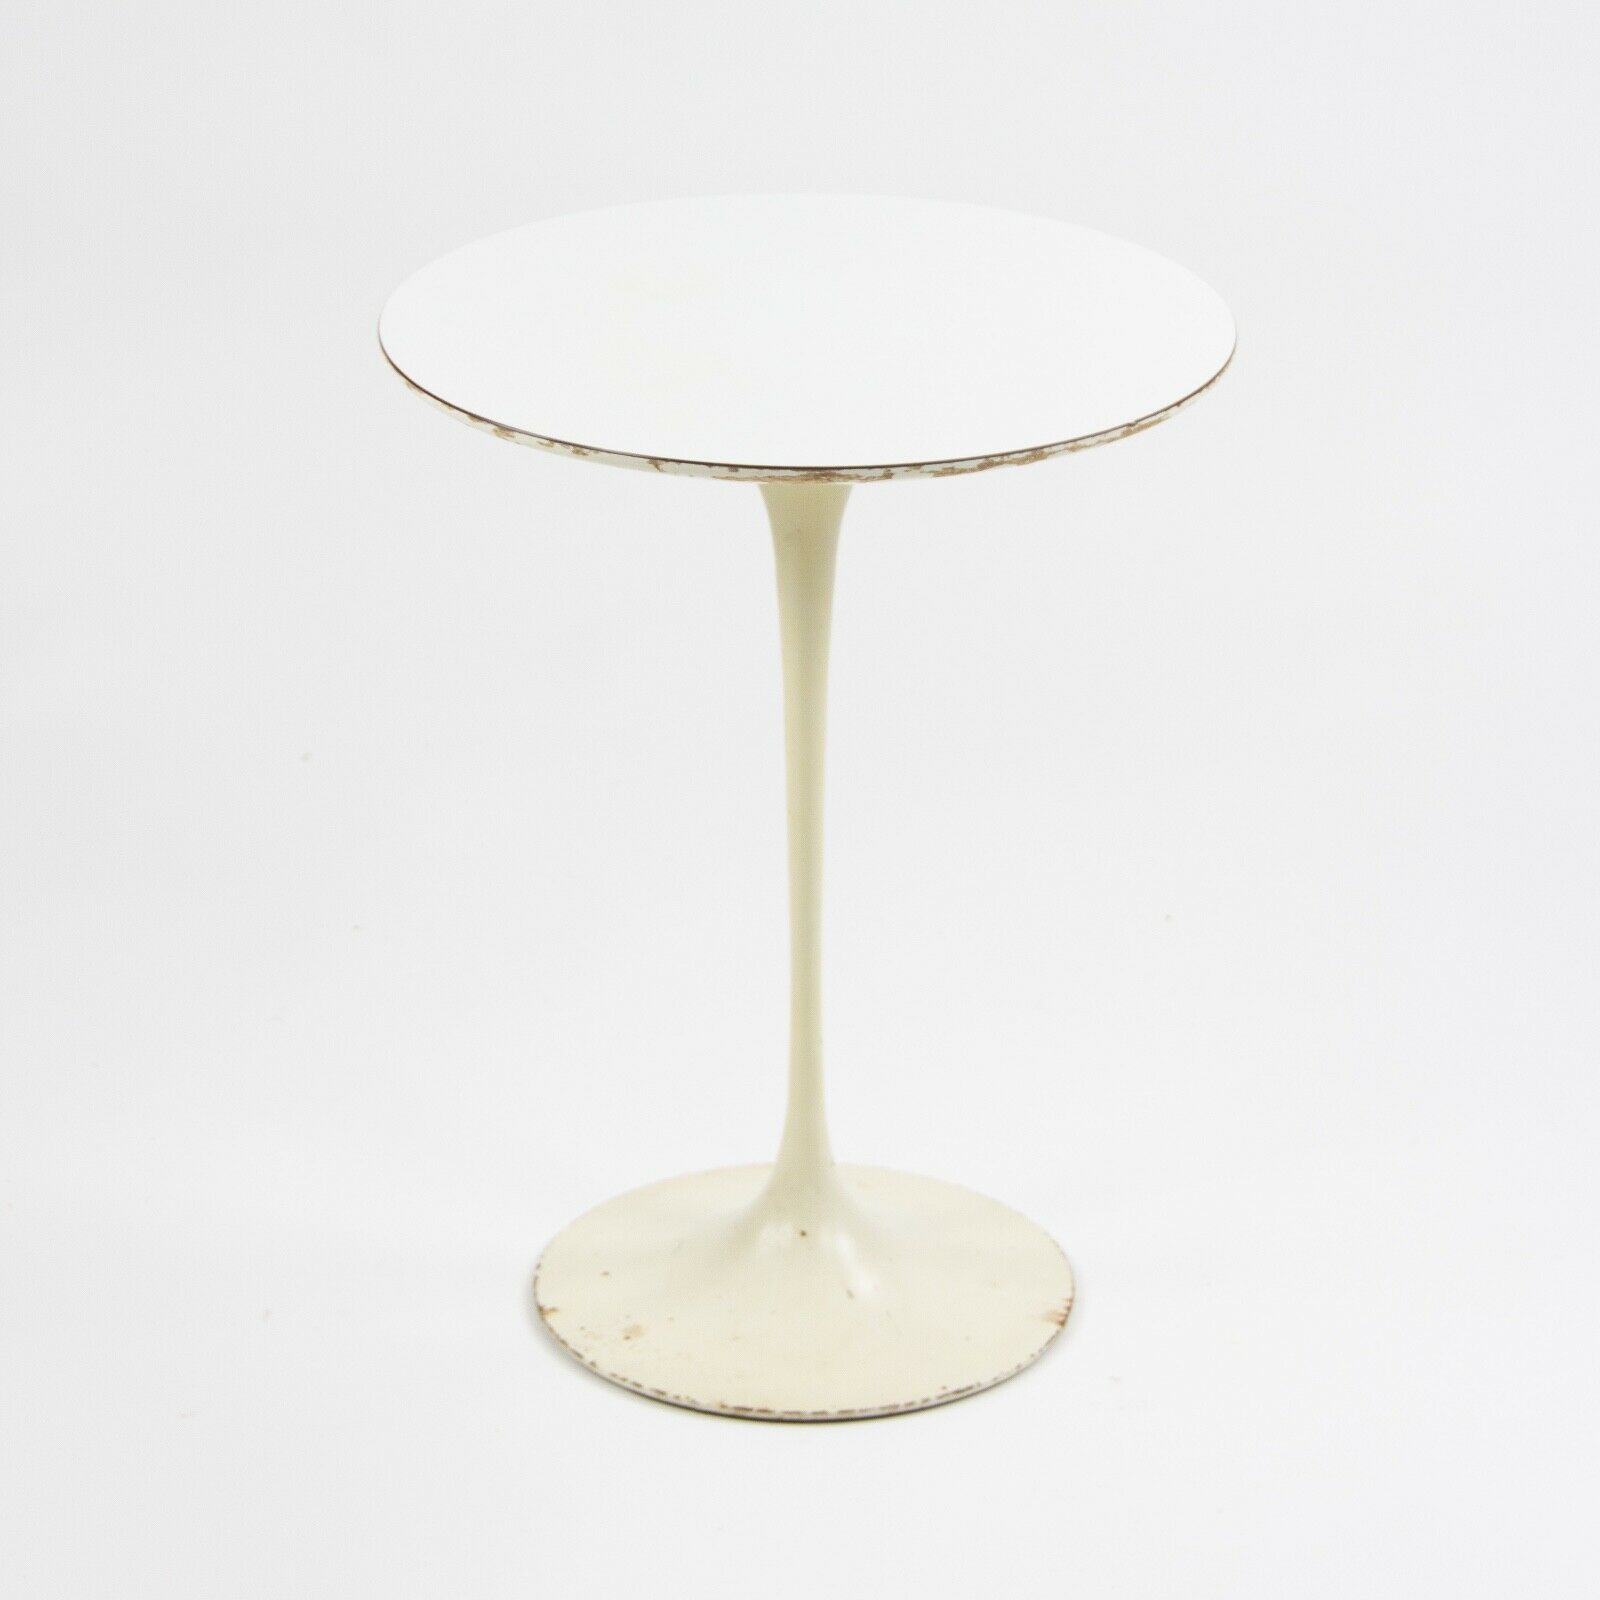 Saarinen 16 Inch Round Side Table.Details About 1960 S Vintage Eero Saarinen For Knoll 16 Inch Tulip Side Table White Laminate